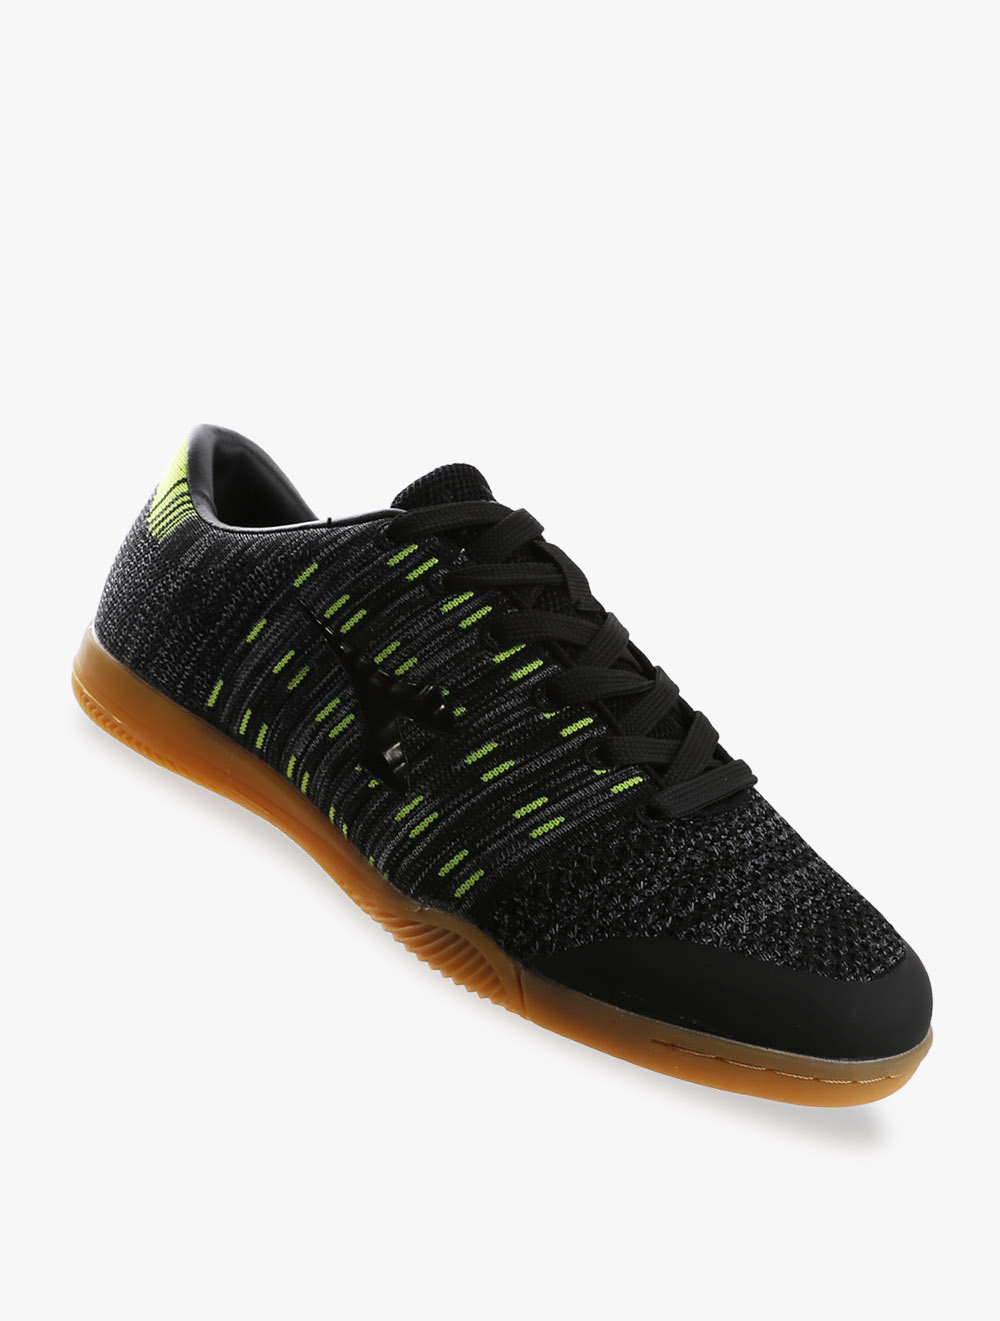 73583ea23435 Shop amp; Accessories Diadora In Shoes On From Indonesia r5znUrxq